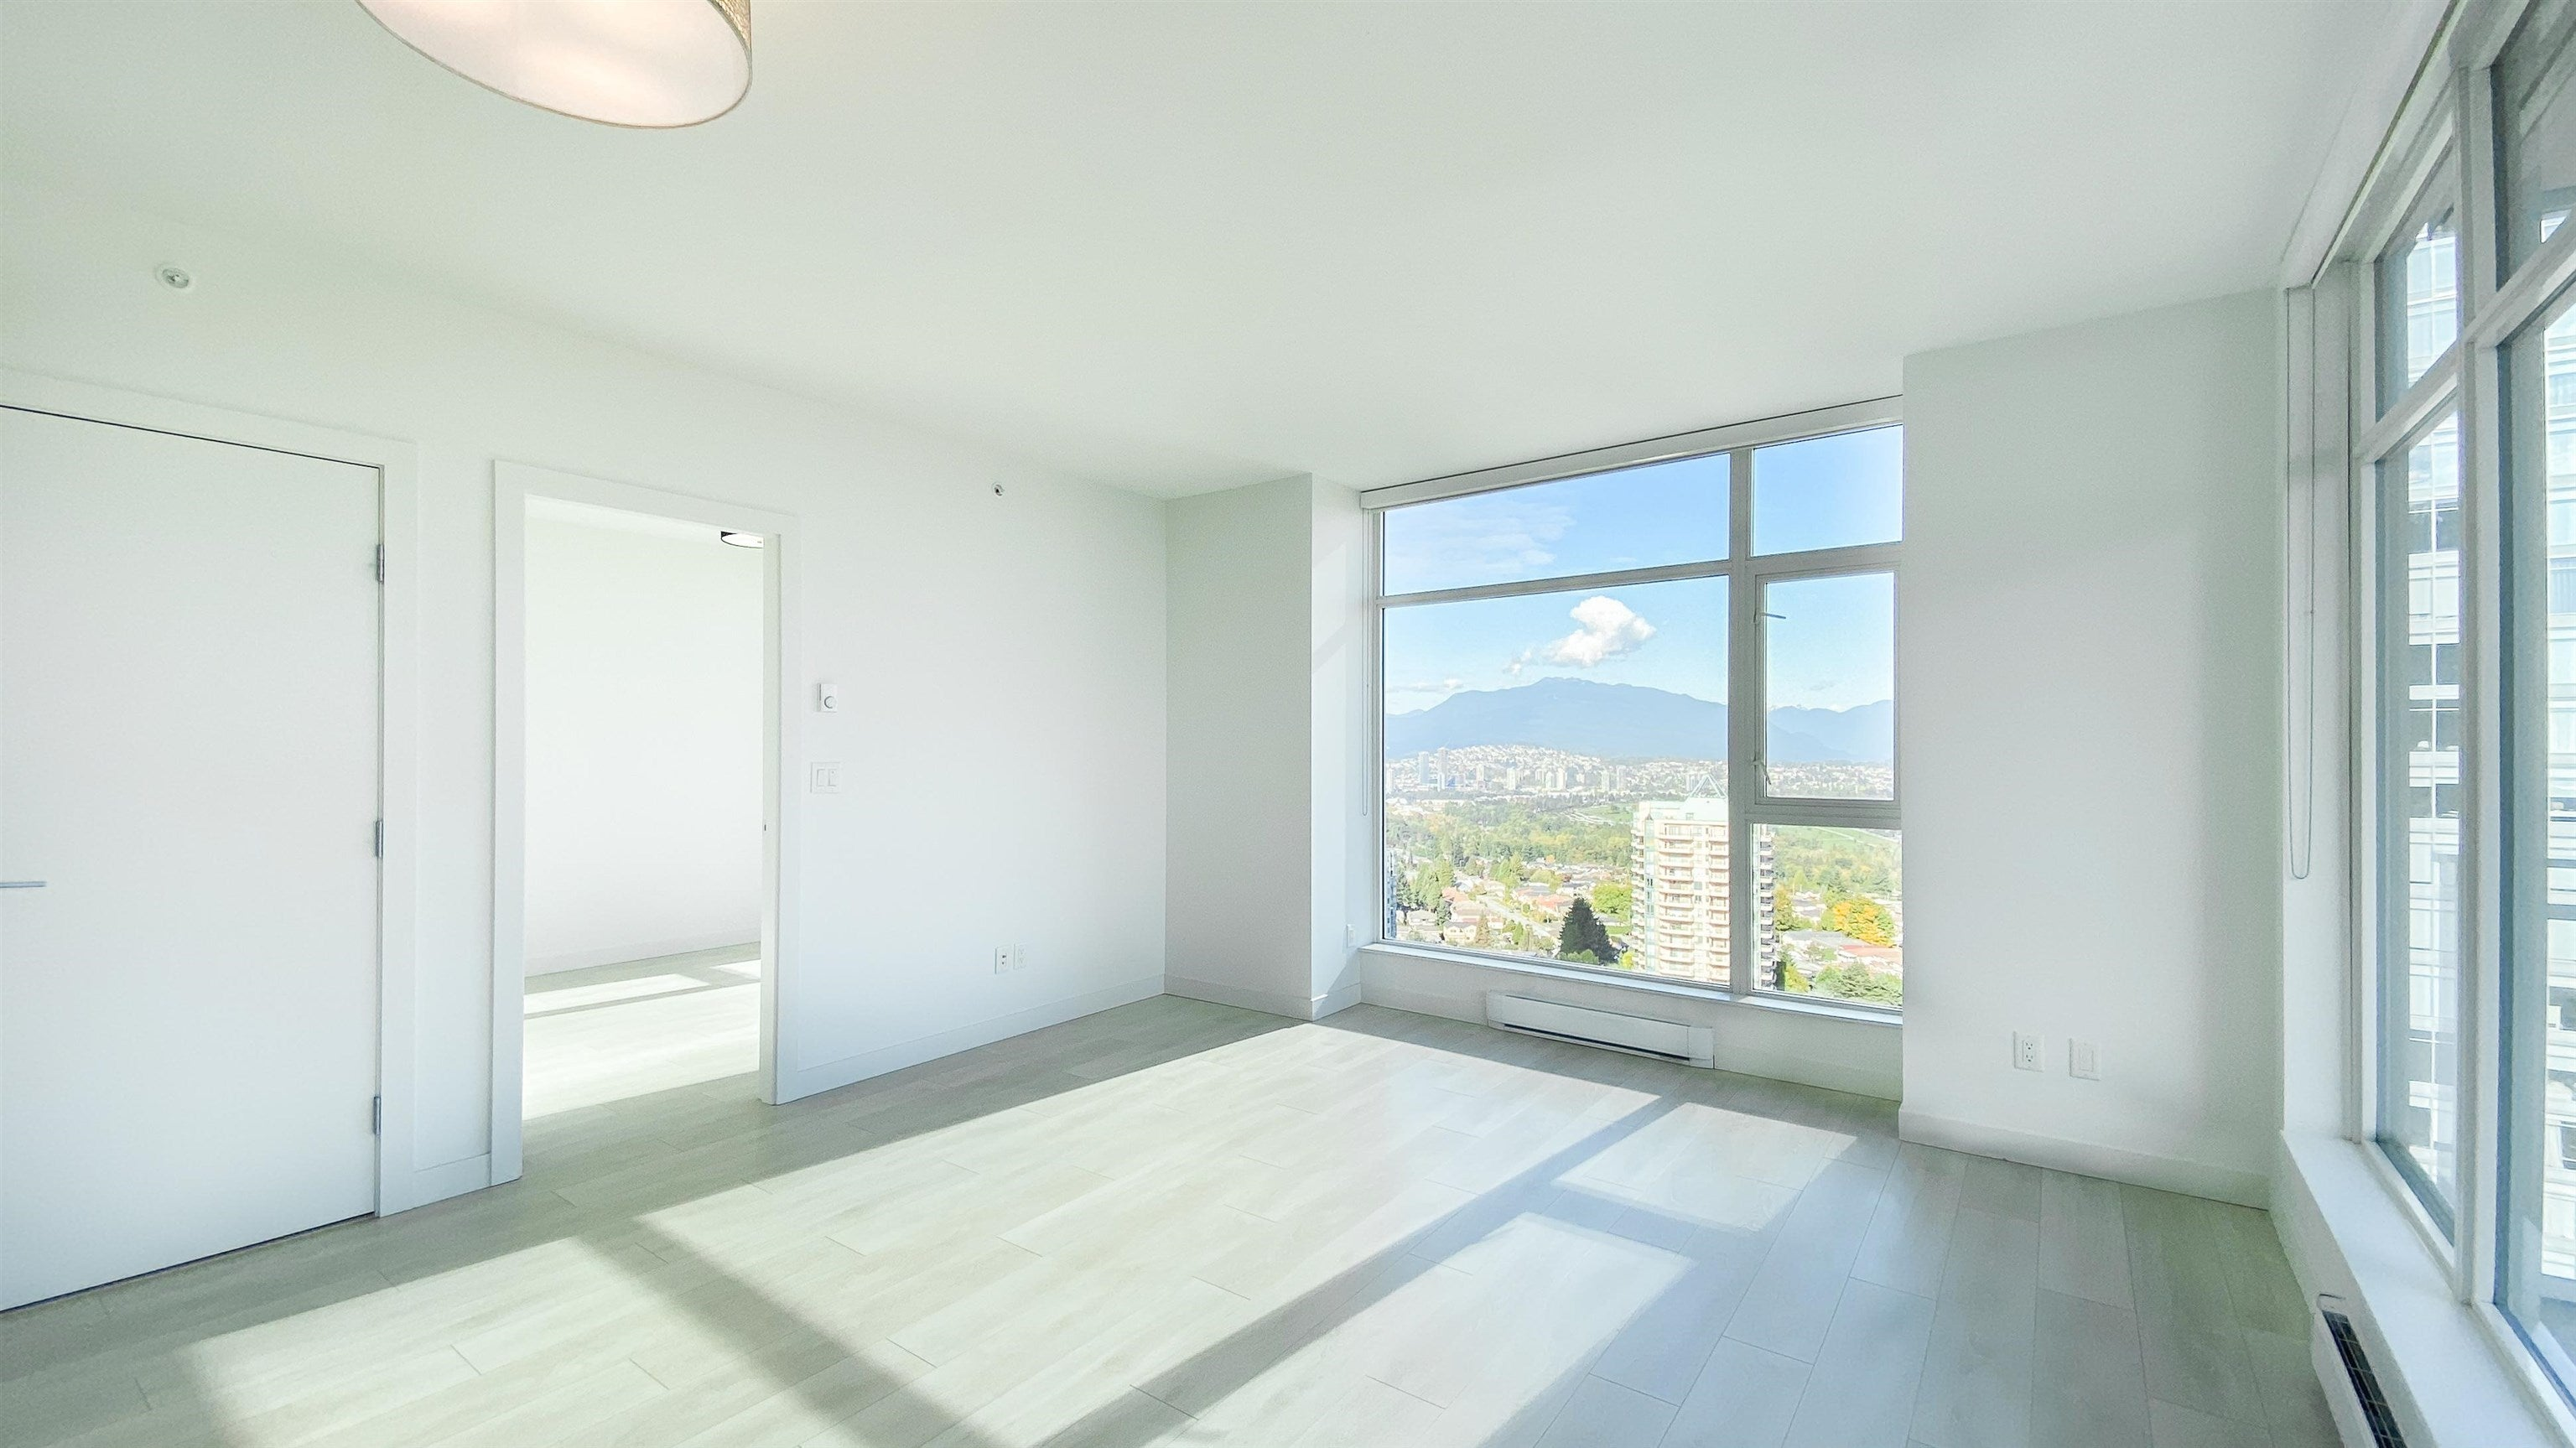 2510 4670 ASSEMBLY WAY - Metrotown Apartment/Condo for sale, 2 Bedrooms (R2625732) - #10